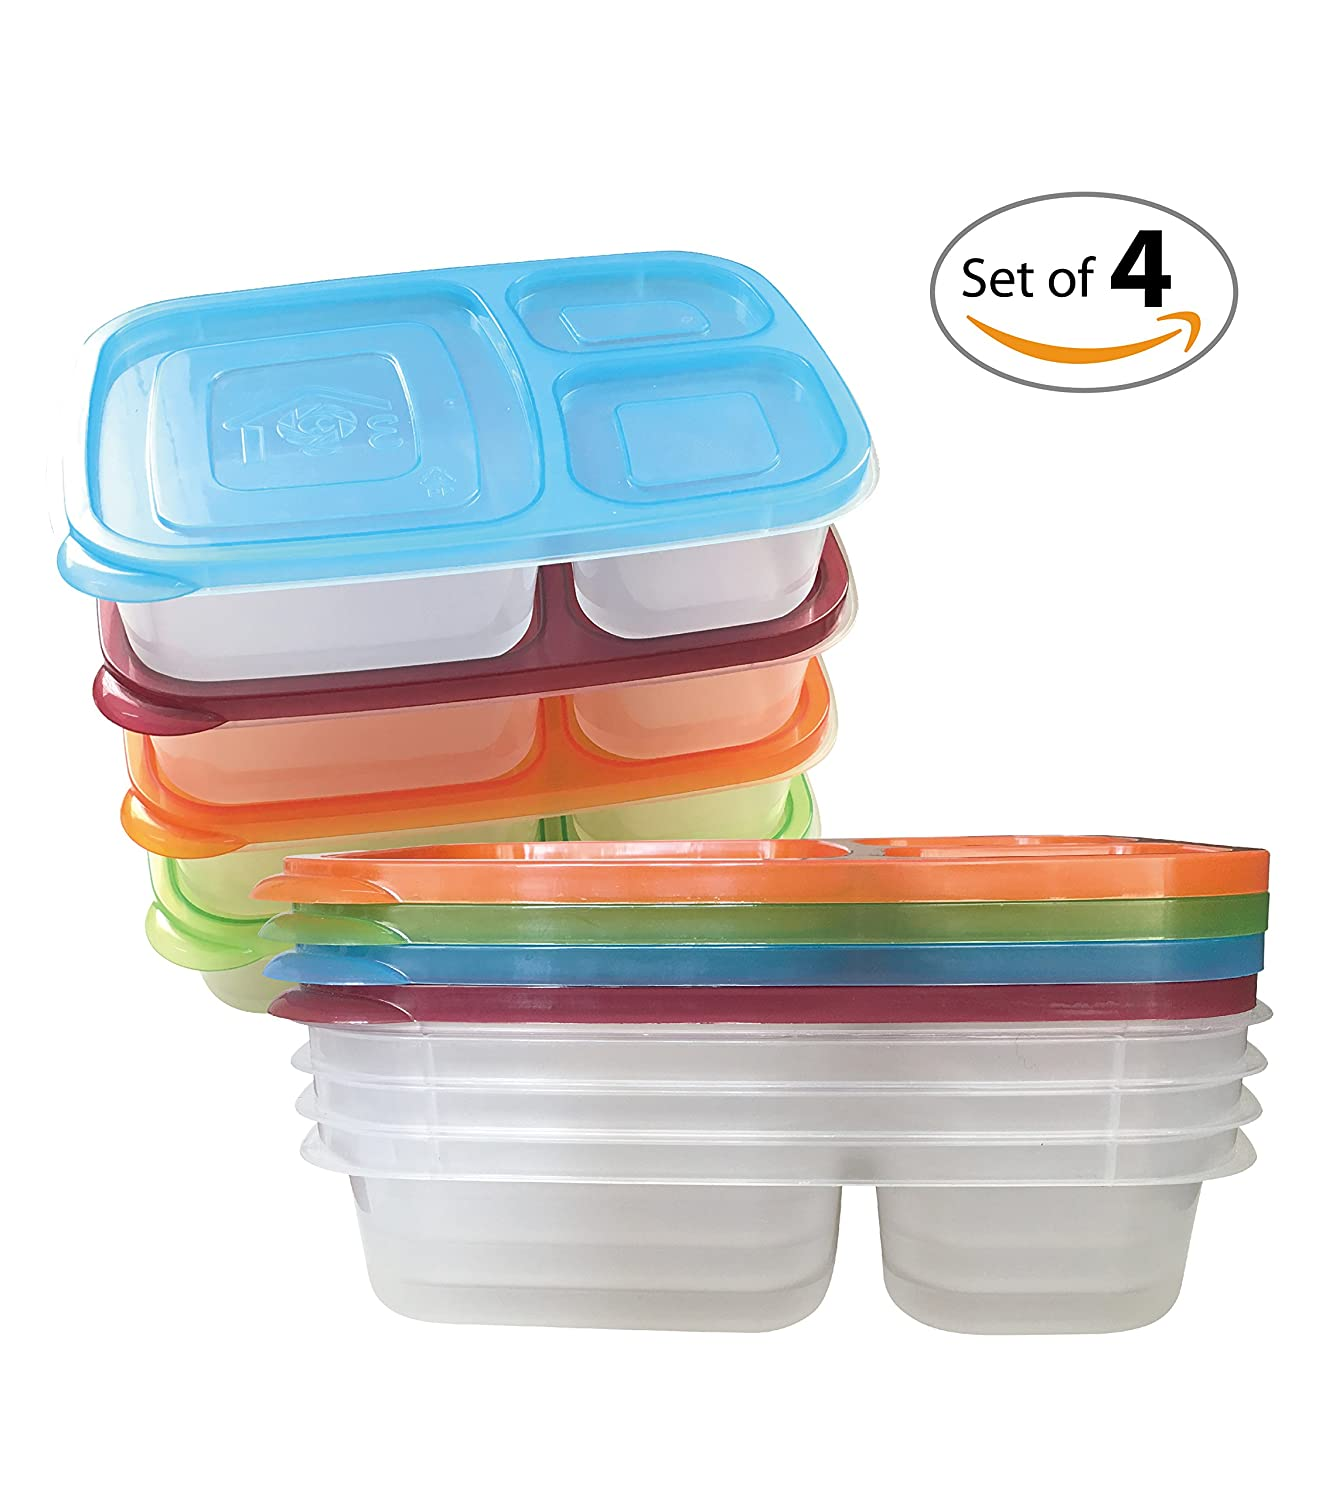 ewei 39 s homewares bento lunch box food storage containers boxes divided plates wi ebay. Black Bedroom Furniture Sets. Home Design Ideas